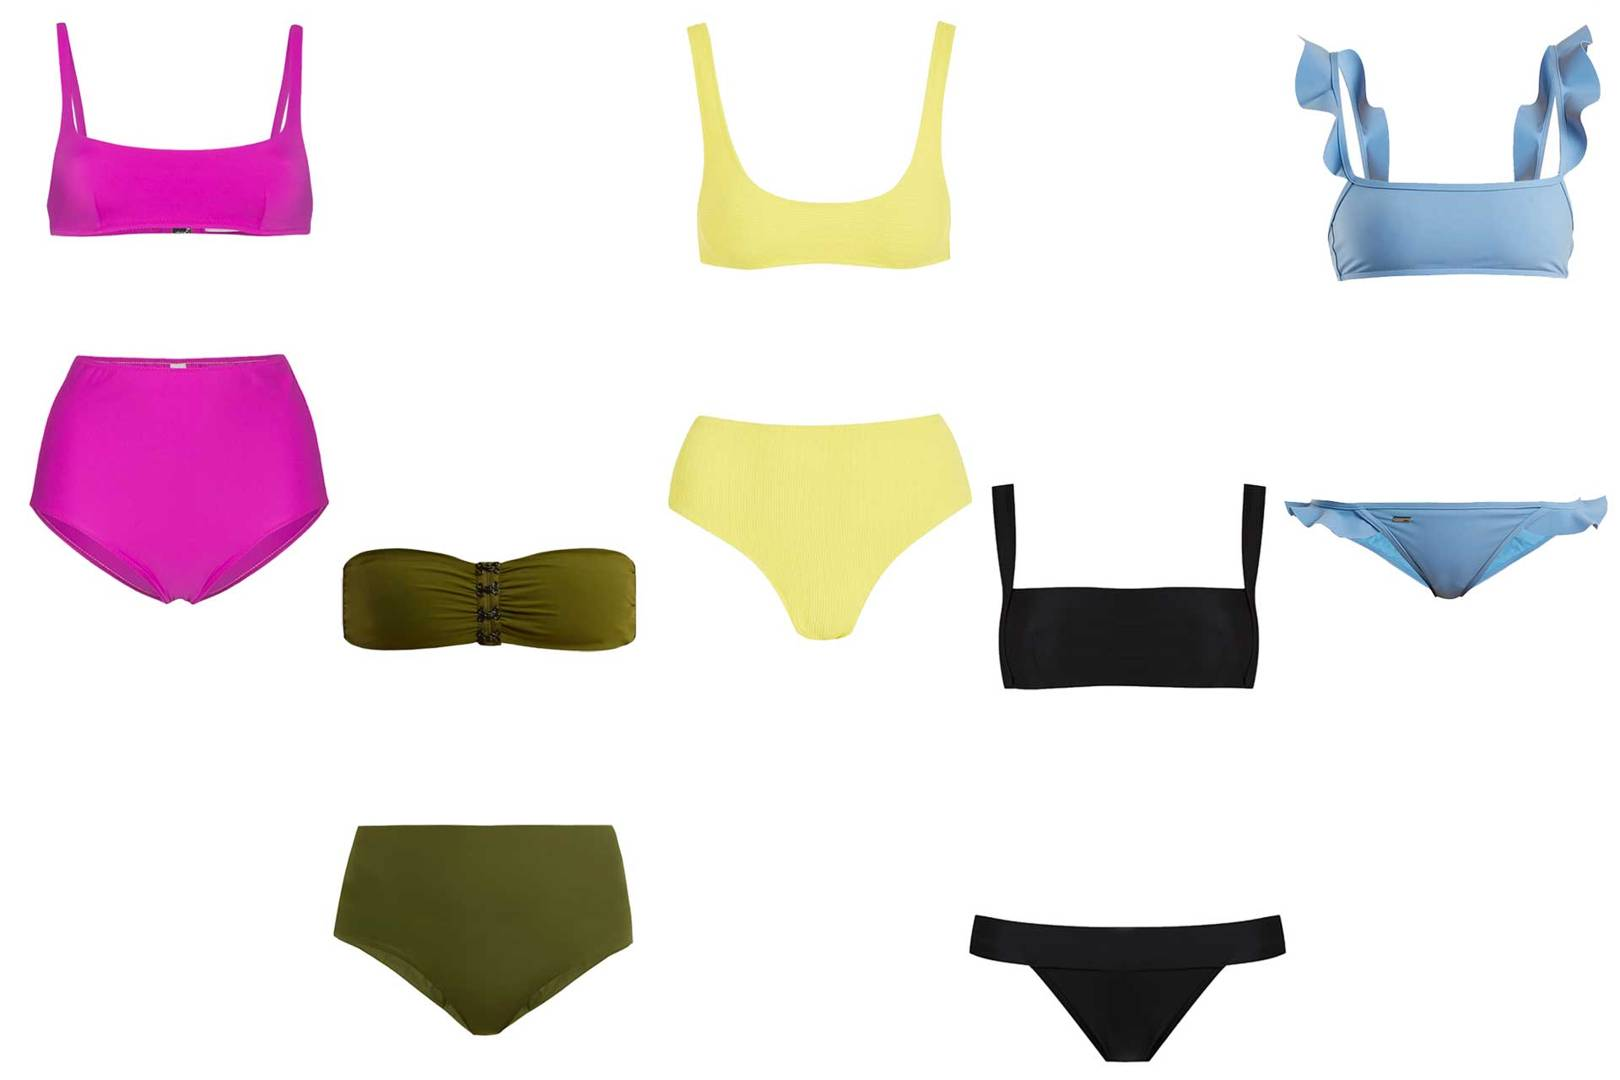 798eb1a676 The Best Bikinis For Every Size, Shape And Inclination | British Vogue